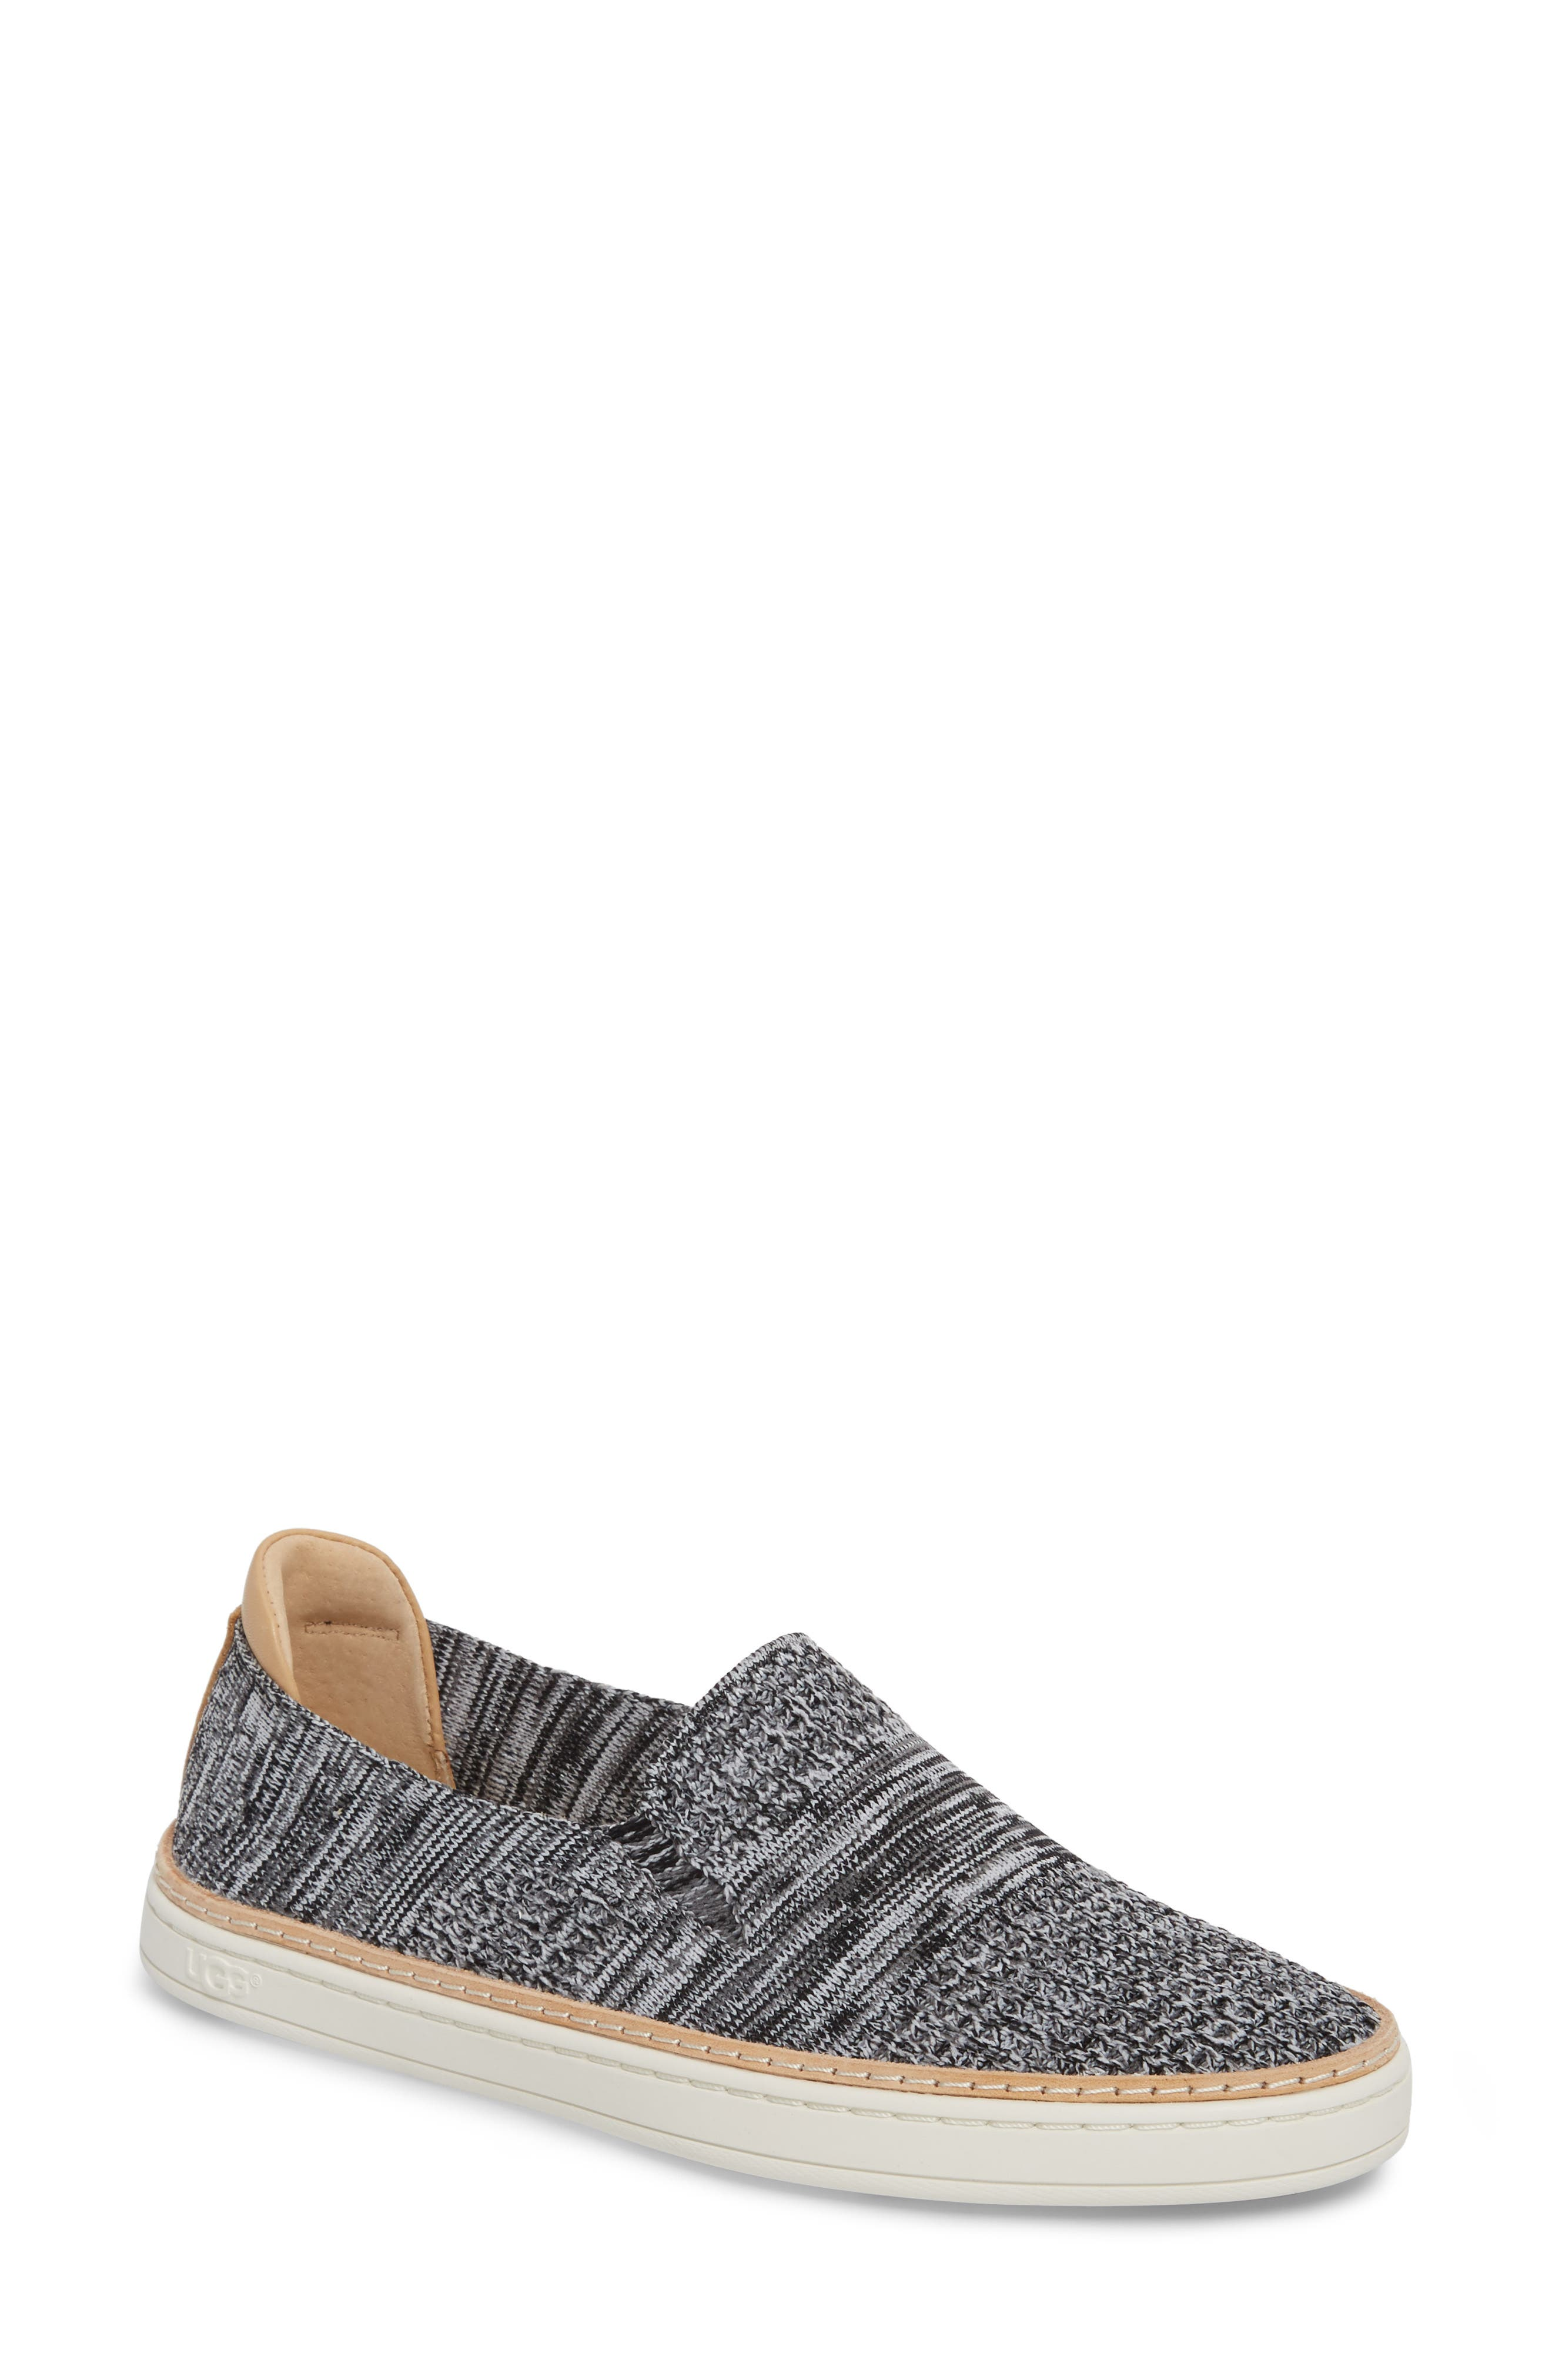 Sammy Sneaker,                             Main thumbnail 1, color,                             Black Heather